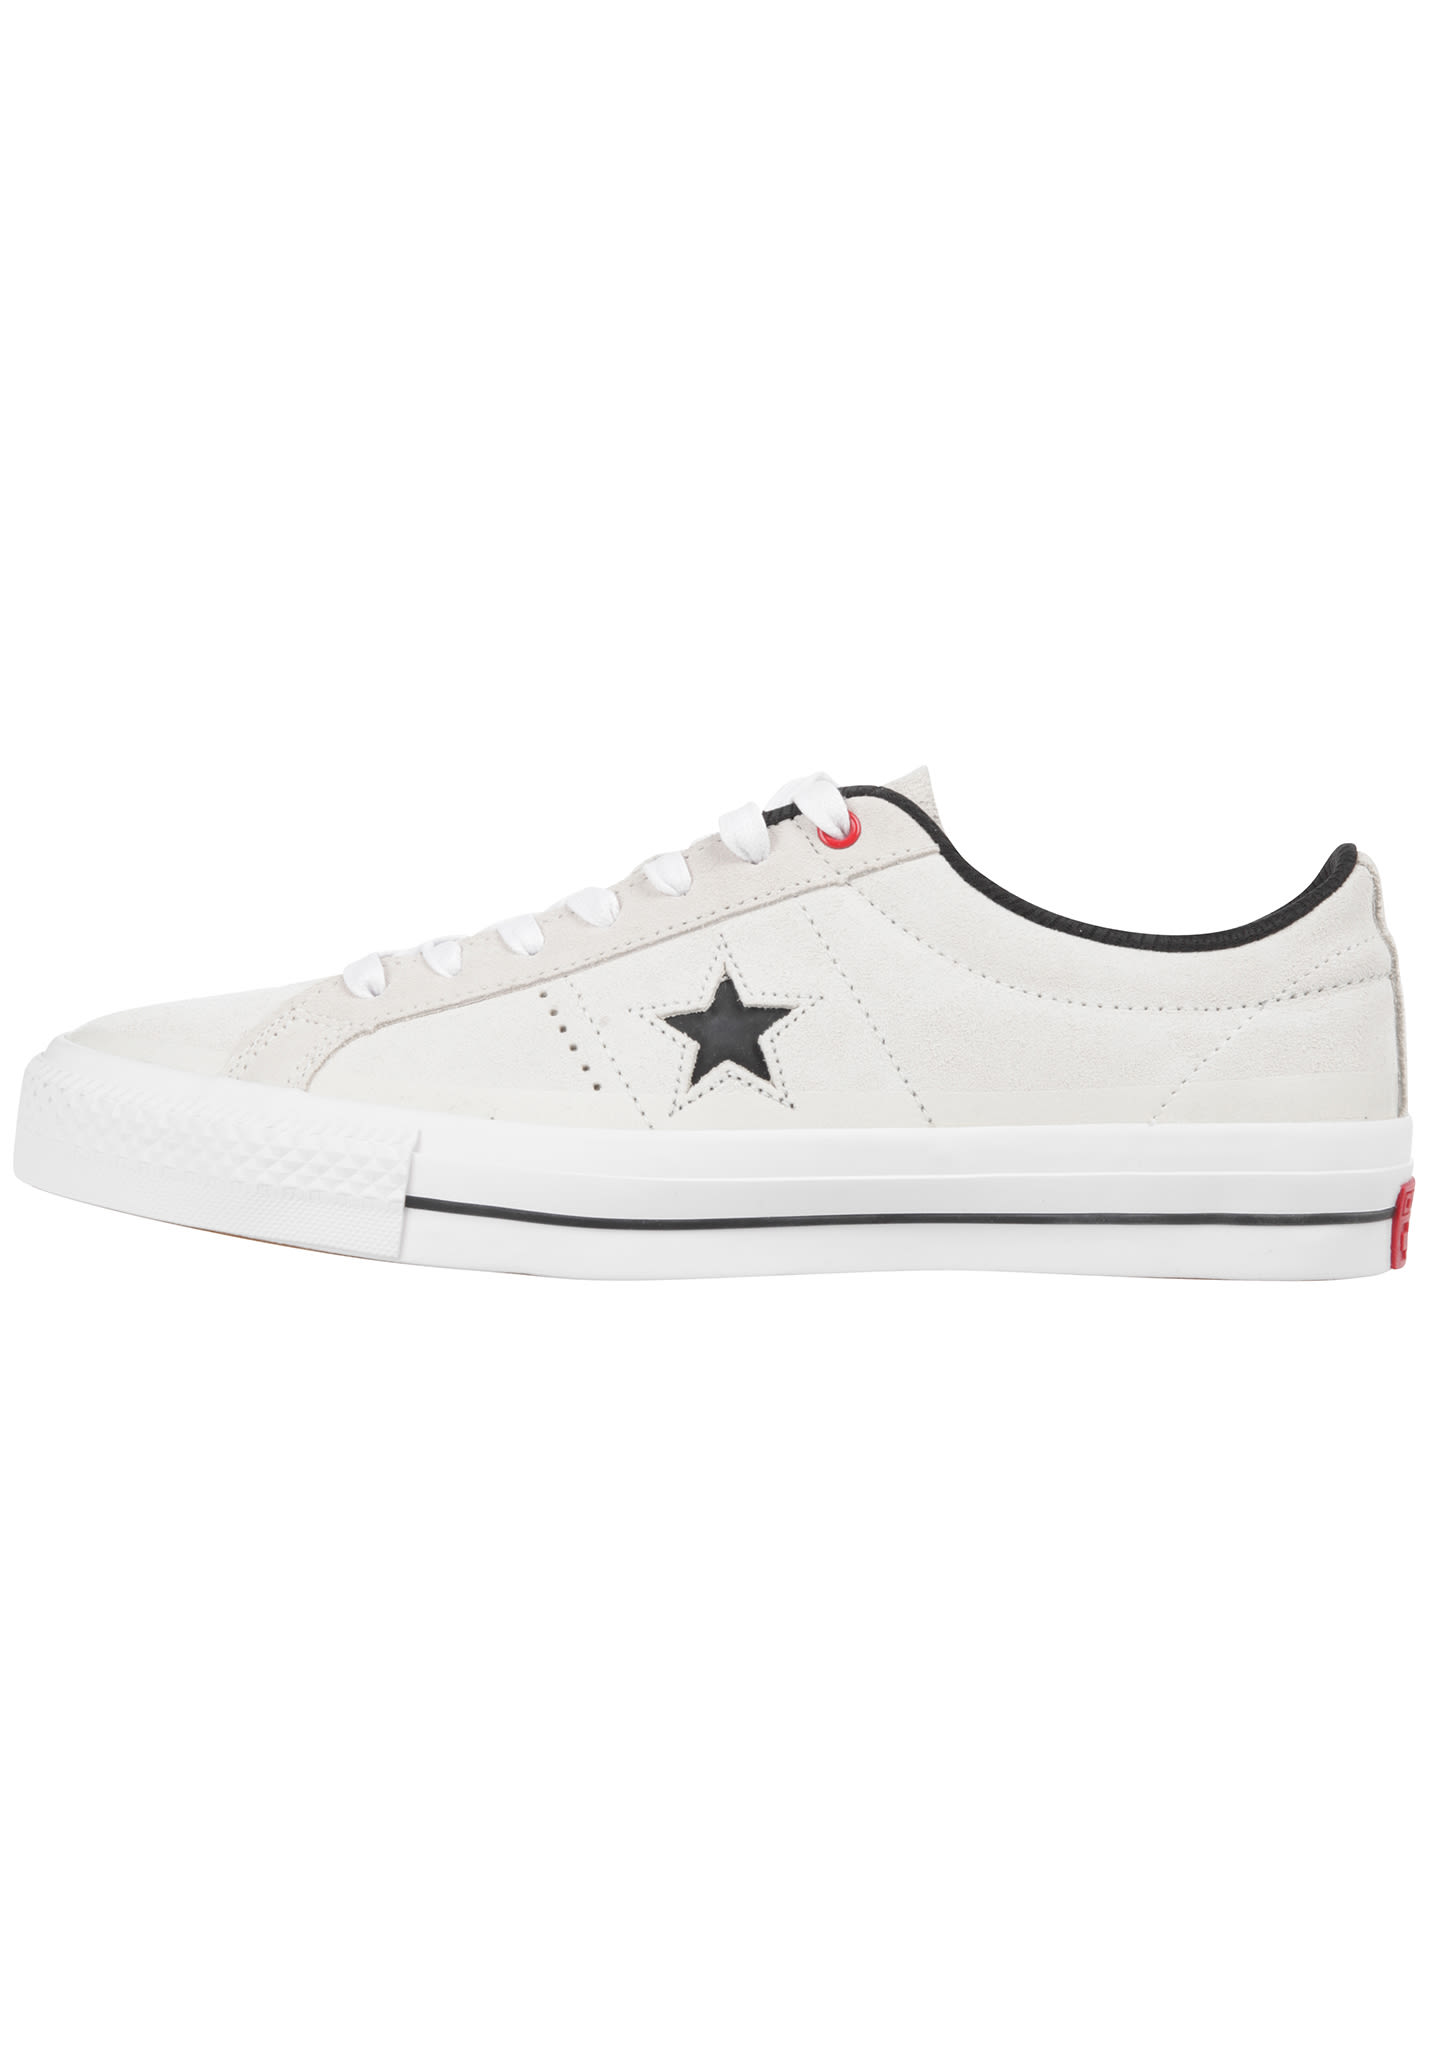 71f9ec04c8a314 Converse One Star Pro Suede Ox - Sneakers - White - Planet Sports